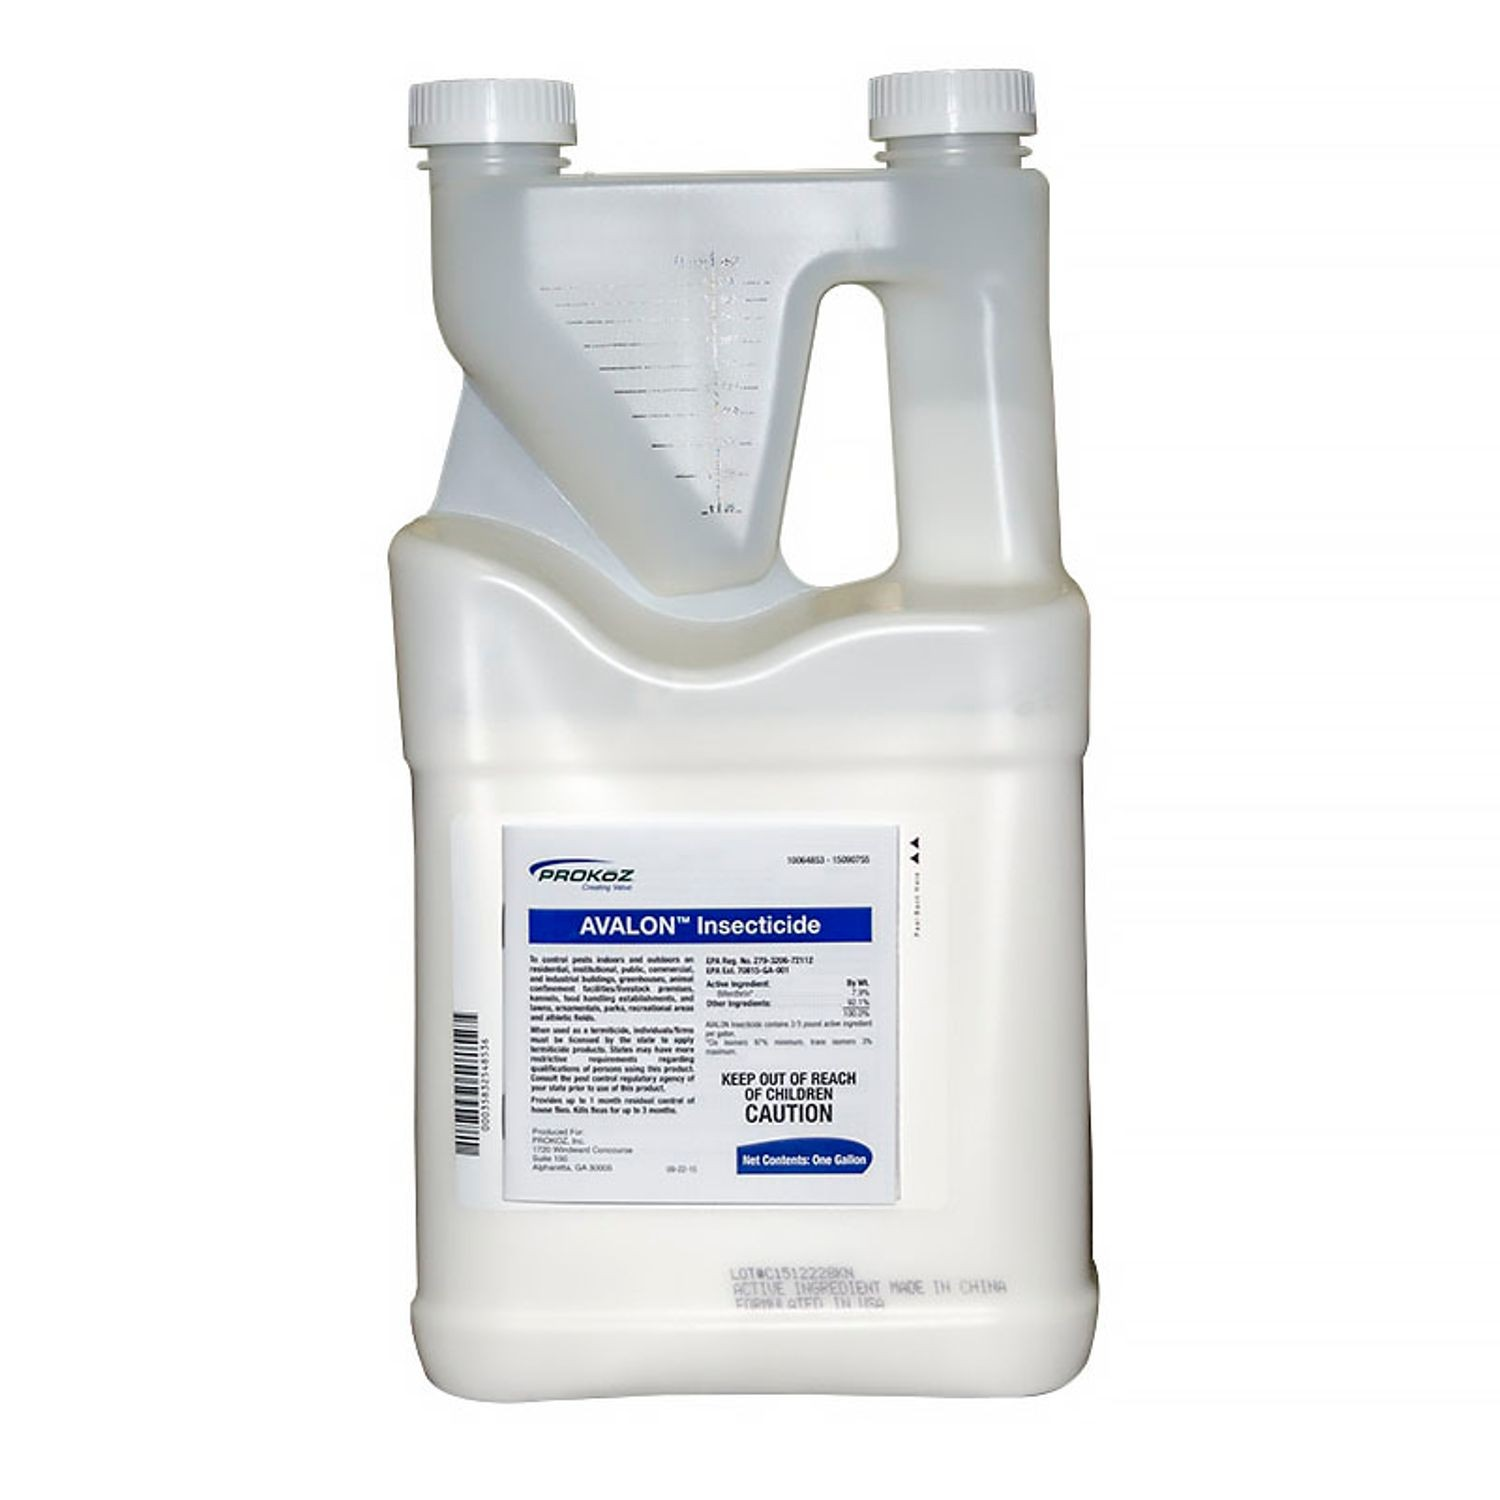 Prokoz - Avalon Insecticide Tip N Pour Jug - 1 GAL   Reinders